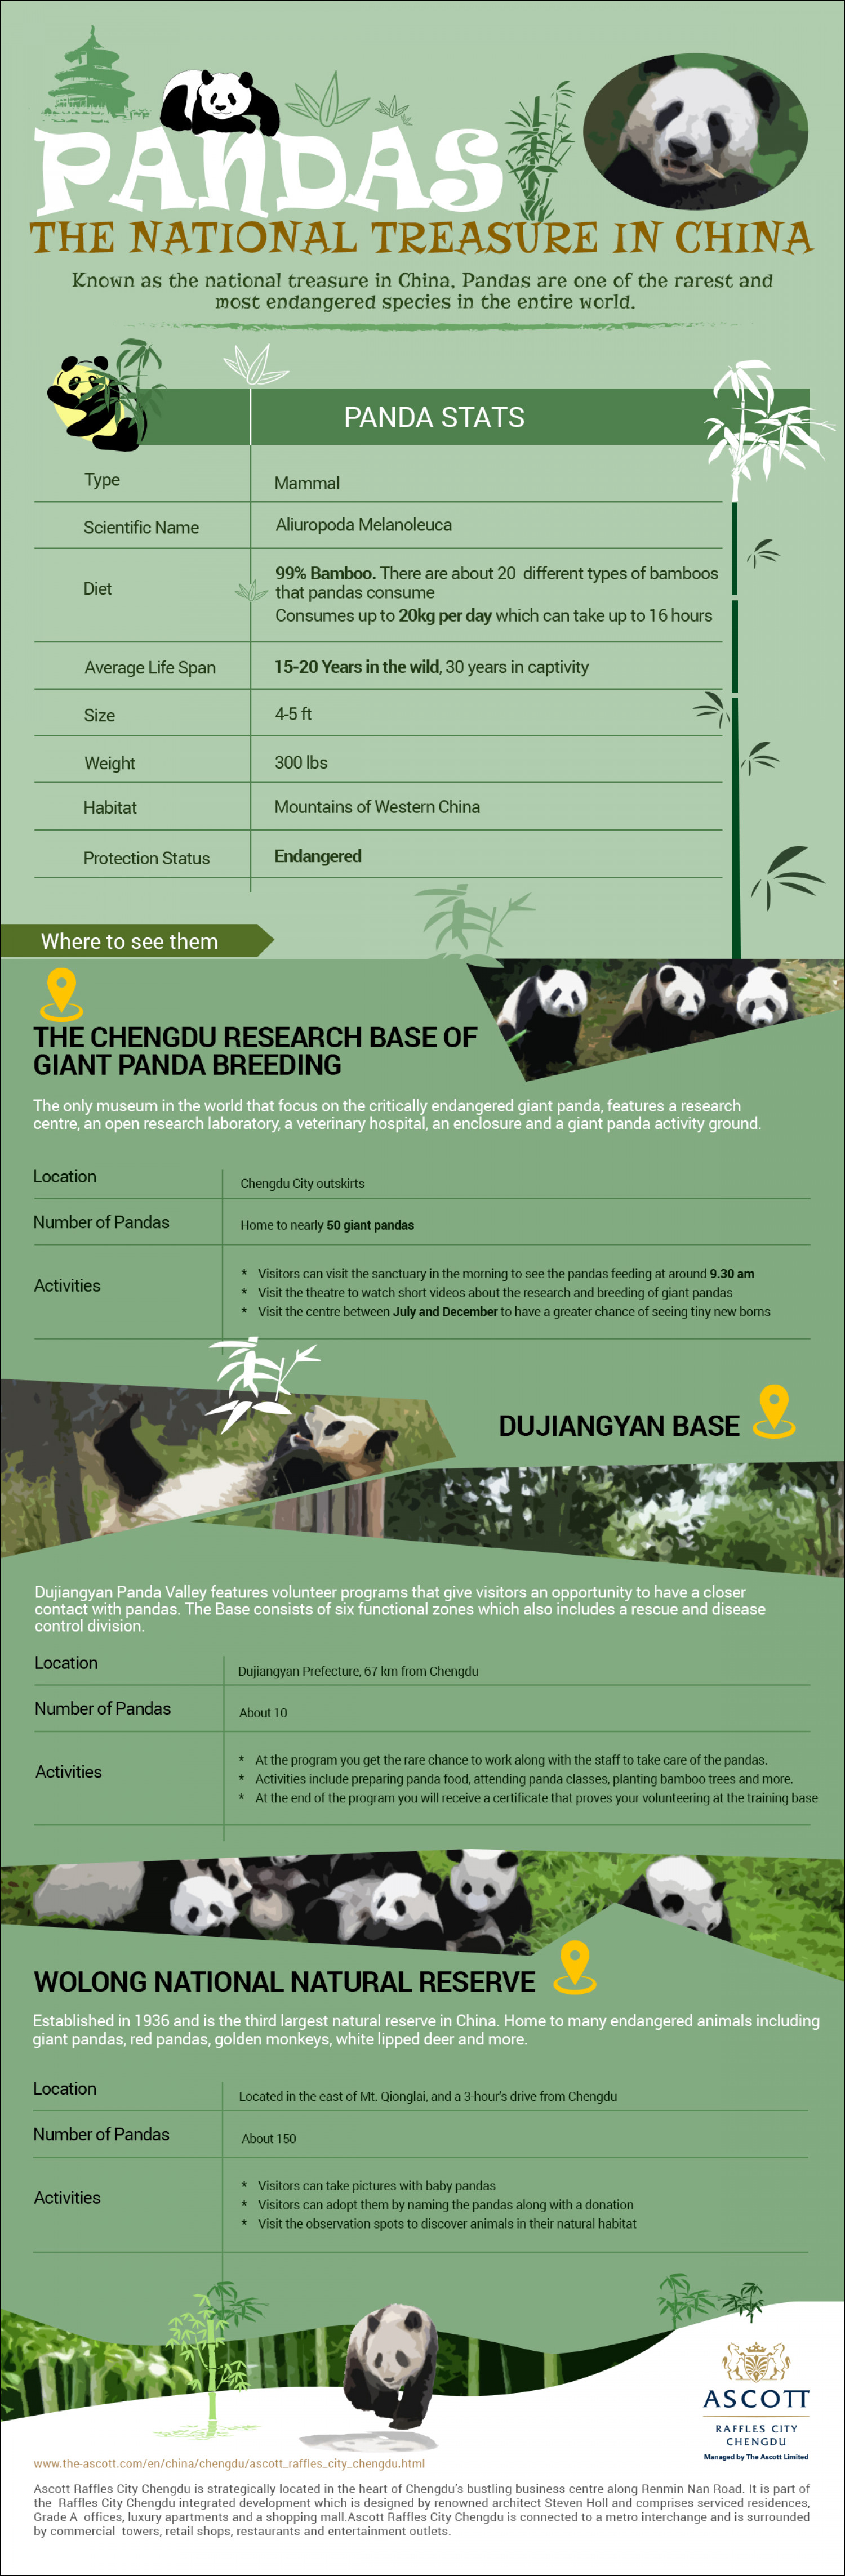 Pandas the National Treasure in China Infographic